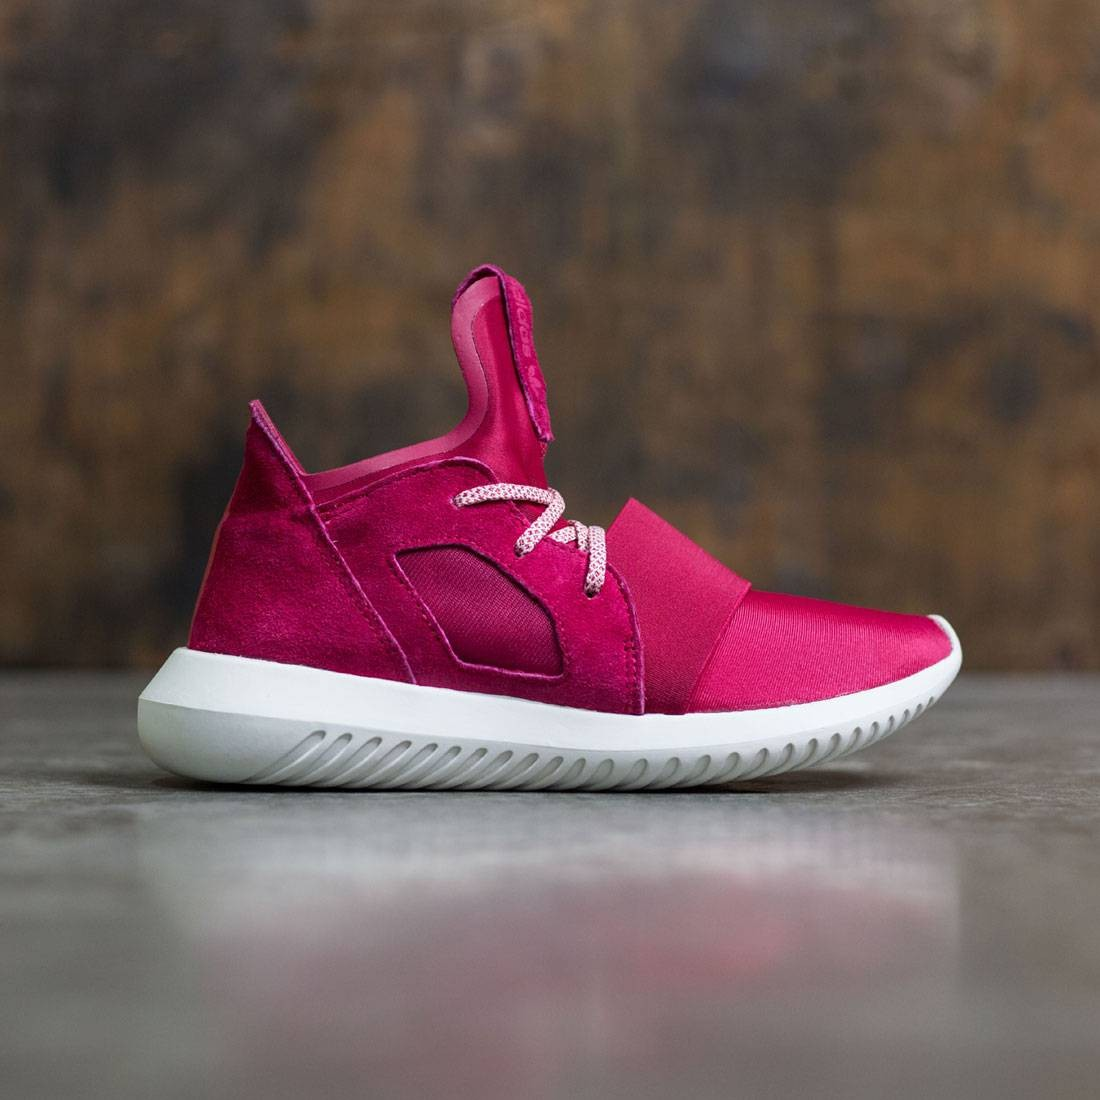 Adidas Tubular womens 7.5 red | Red adidas shoes, Sneaker